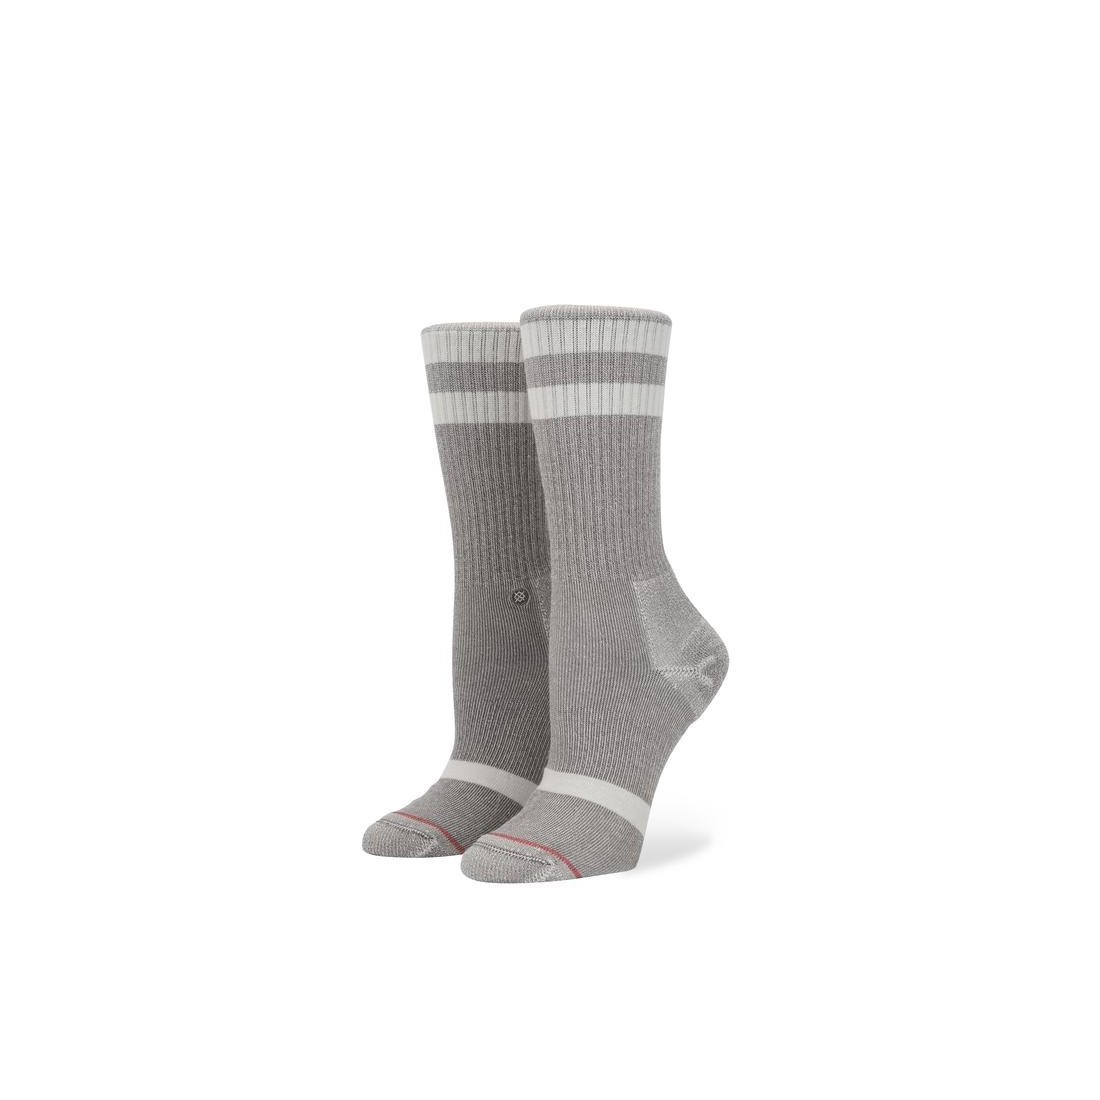 CHAUSSETTE STANCE UNCOMMON CREW grise